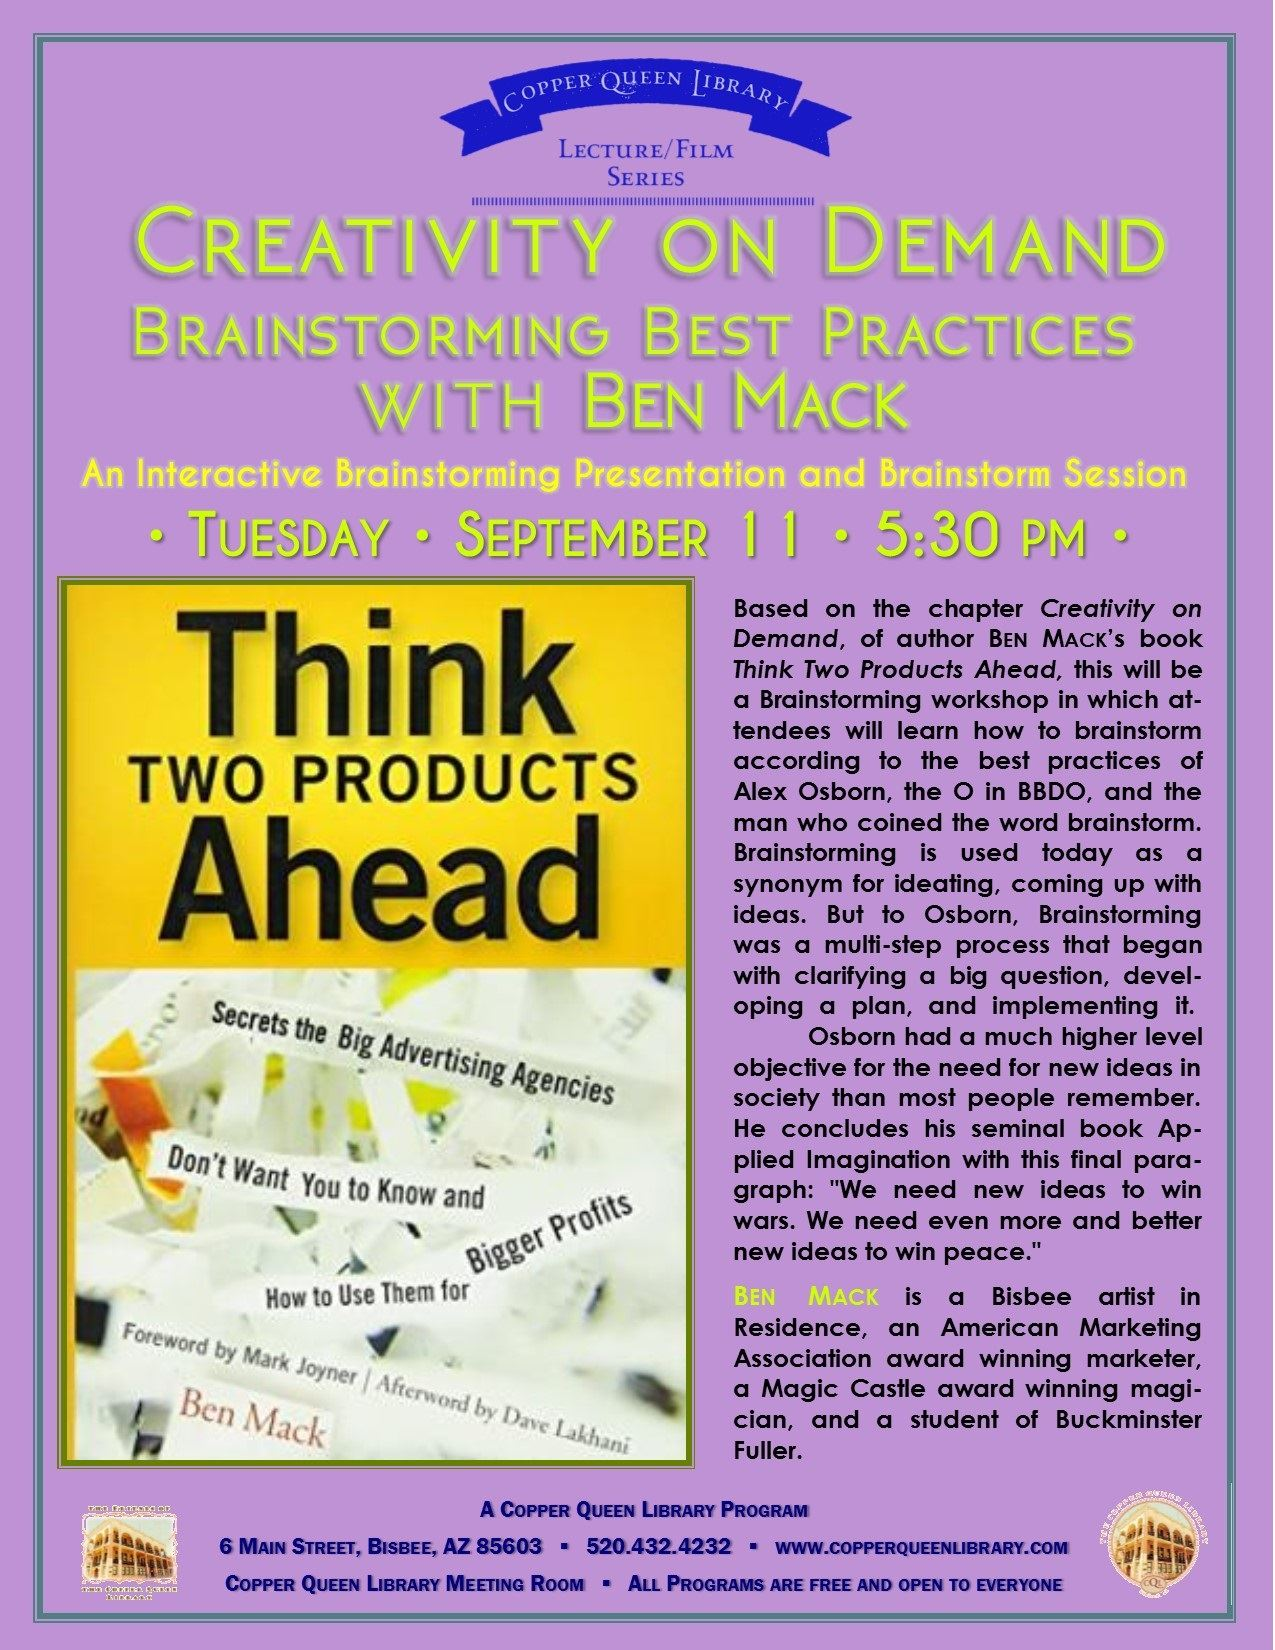 BEN MACK CREATIVITY ON DEMAND  9.11.18 8.5 X 11